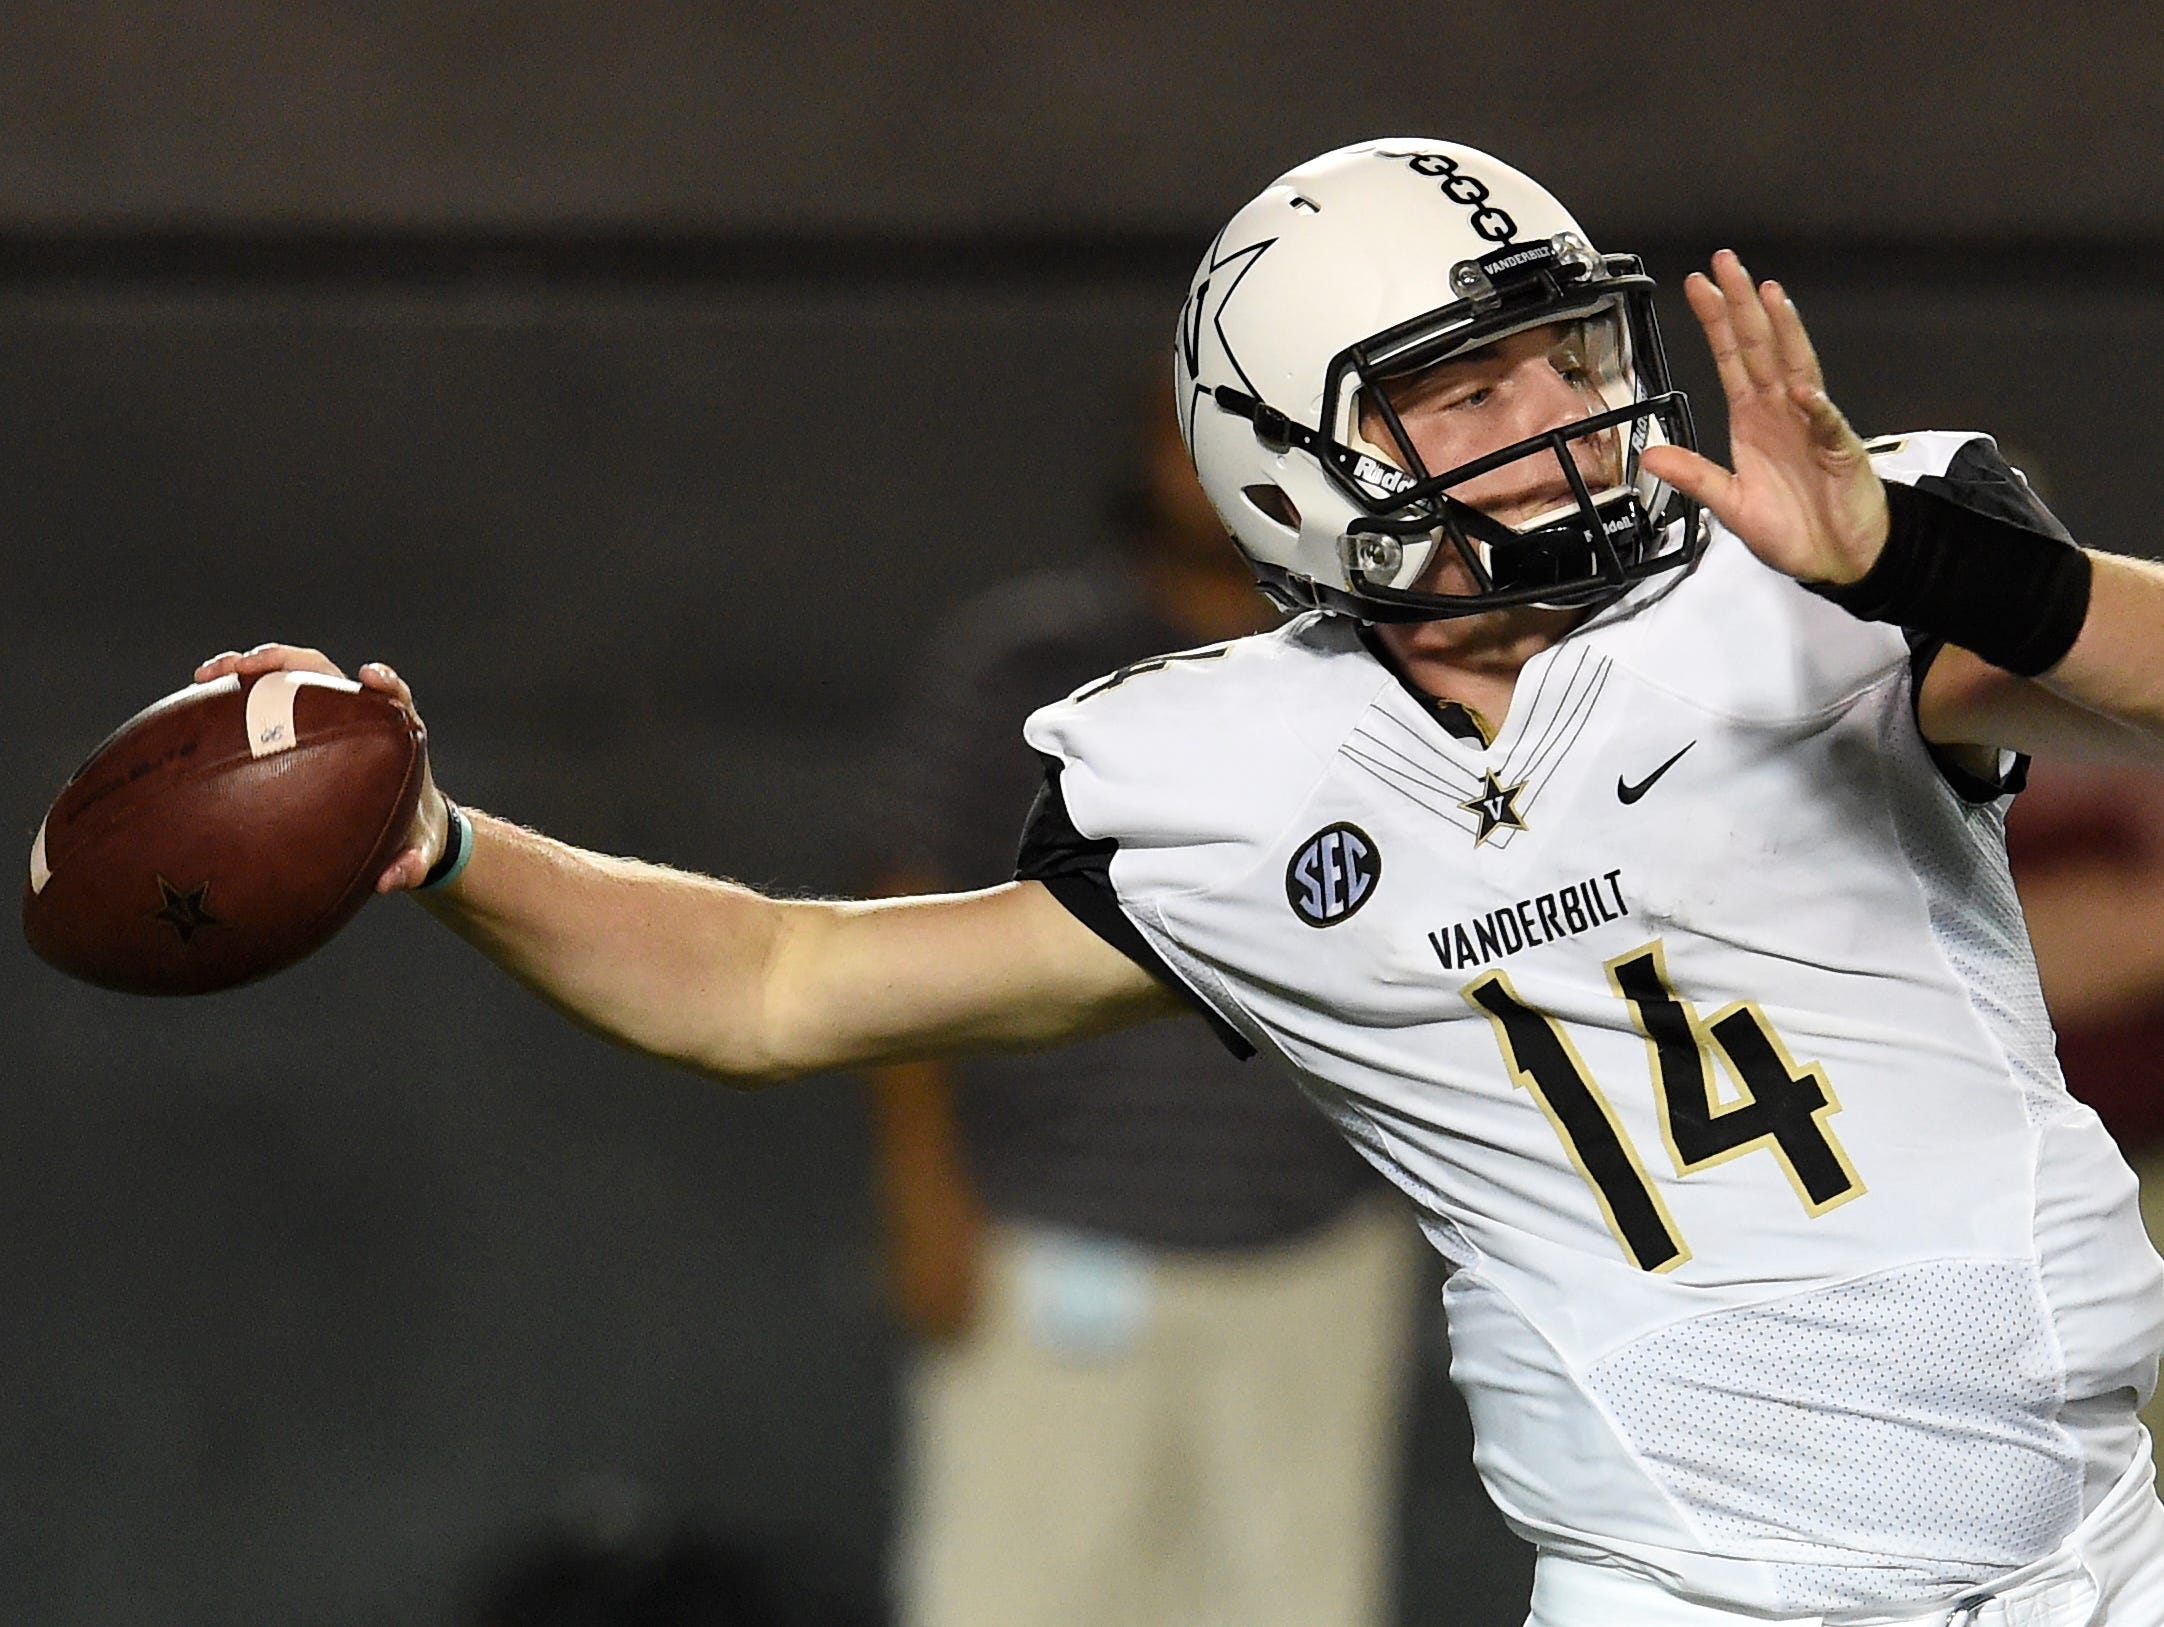 Vanderbilt quarterback Kyle Shurmur (14) drops back to pass in the third quarter of the home opener against South Carolina on Sept. 1, 2016.